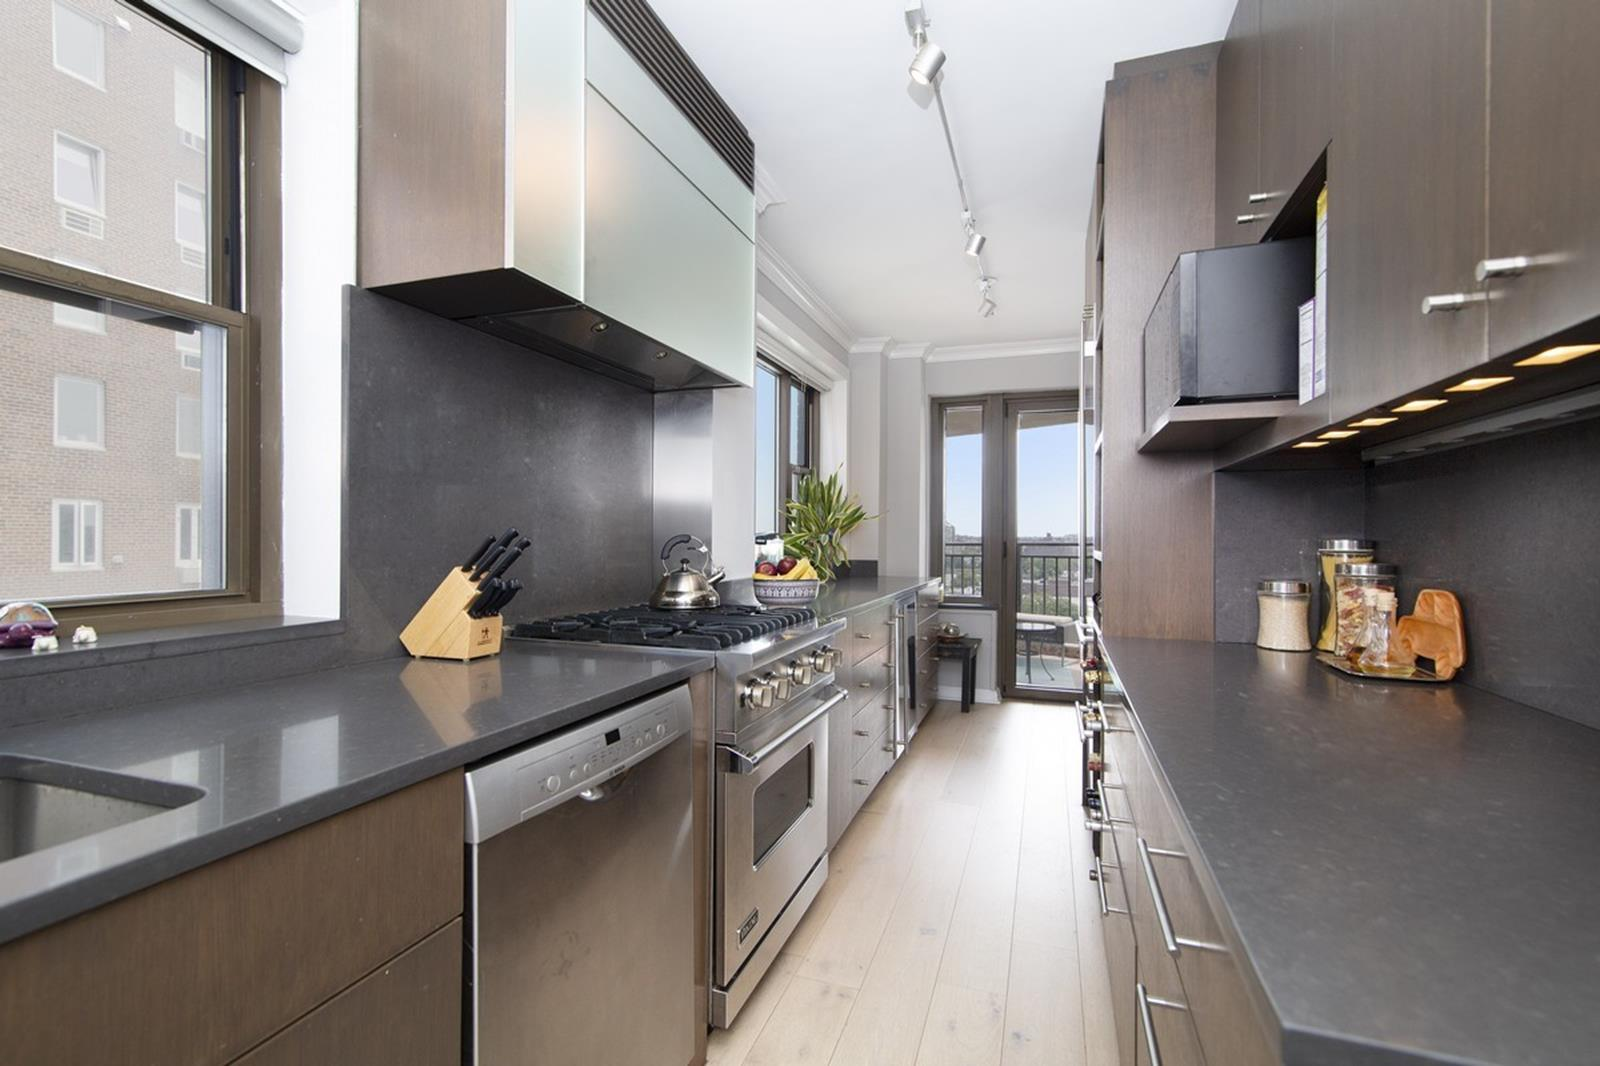 55 EAST END AVENUE #12-D, NEW YORK, NY 10028  Photo 2